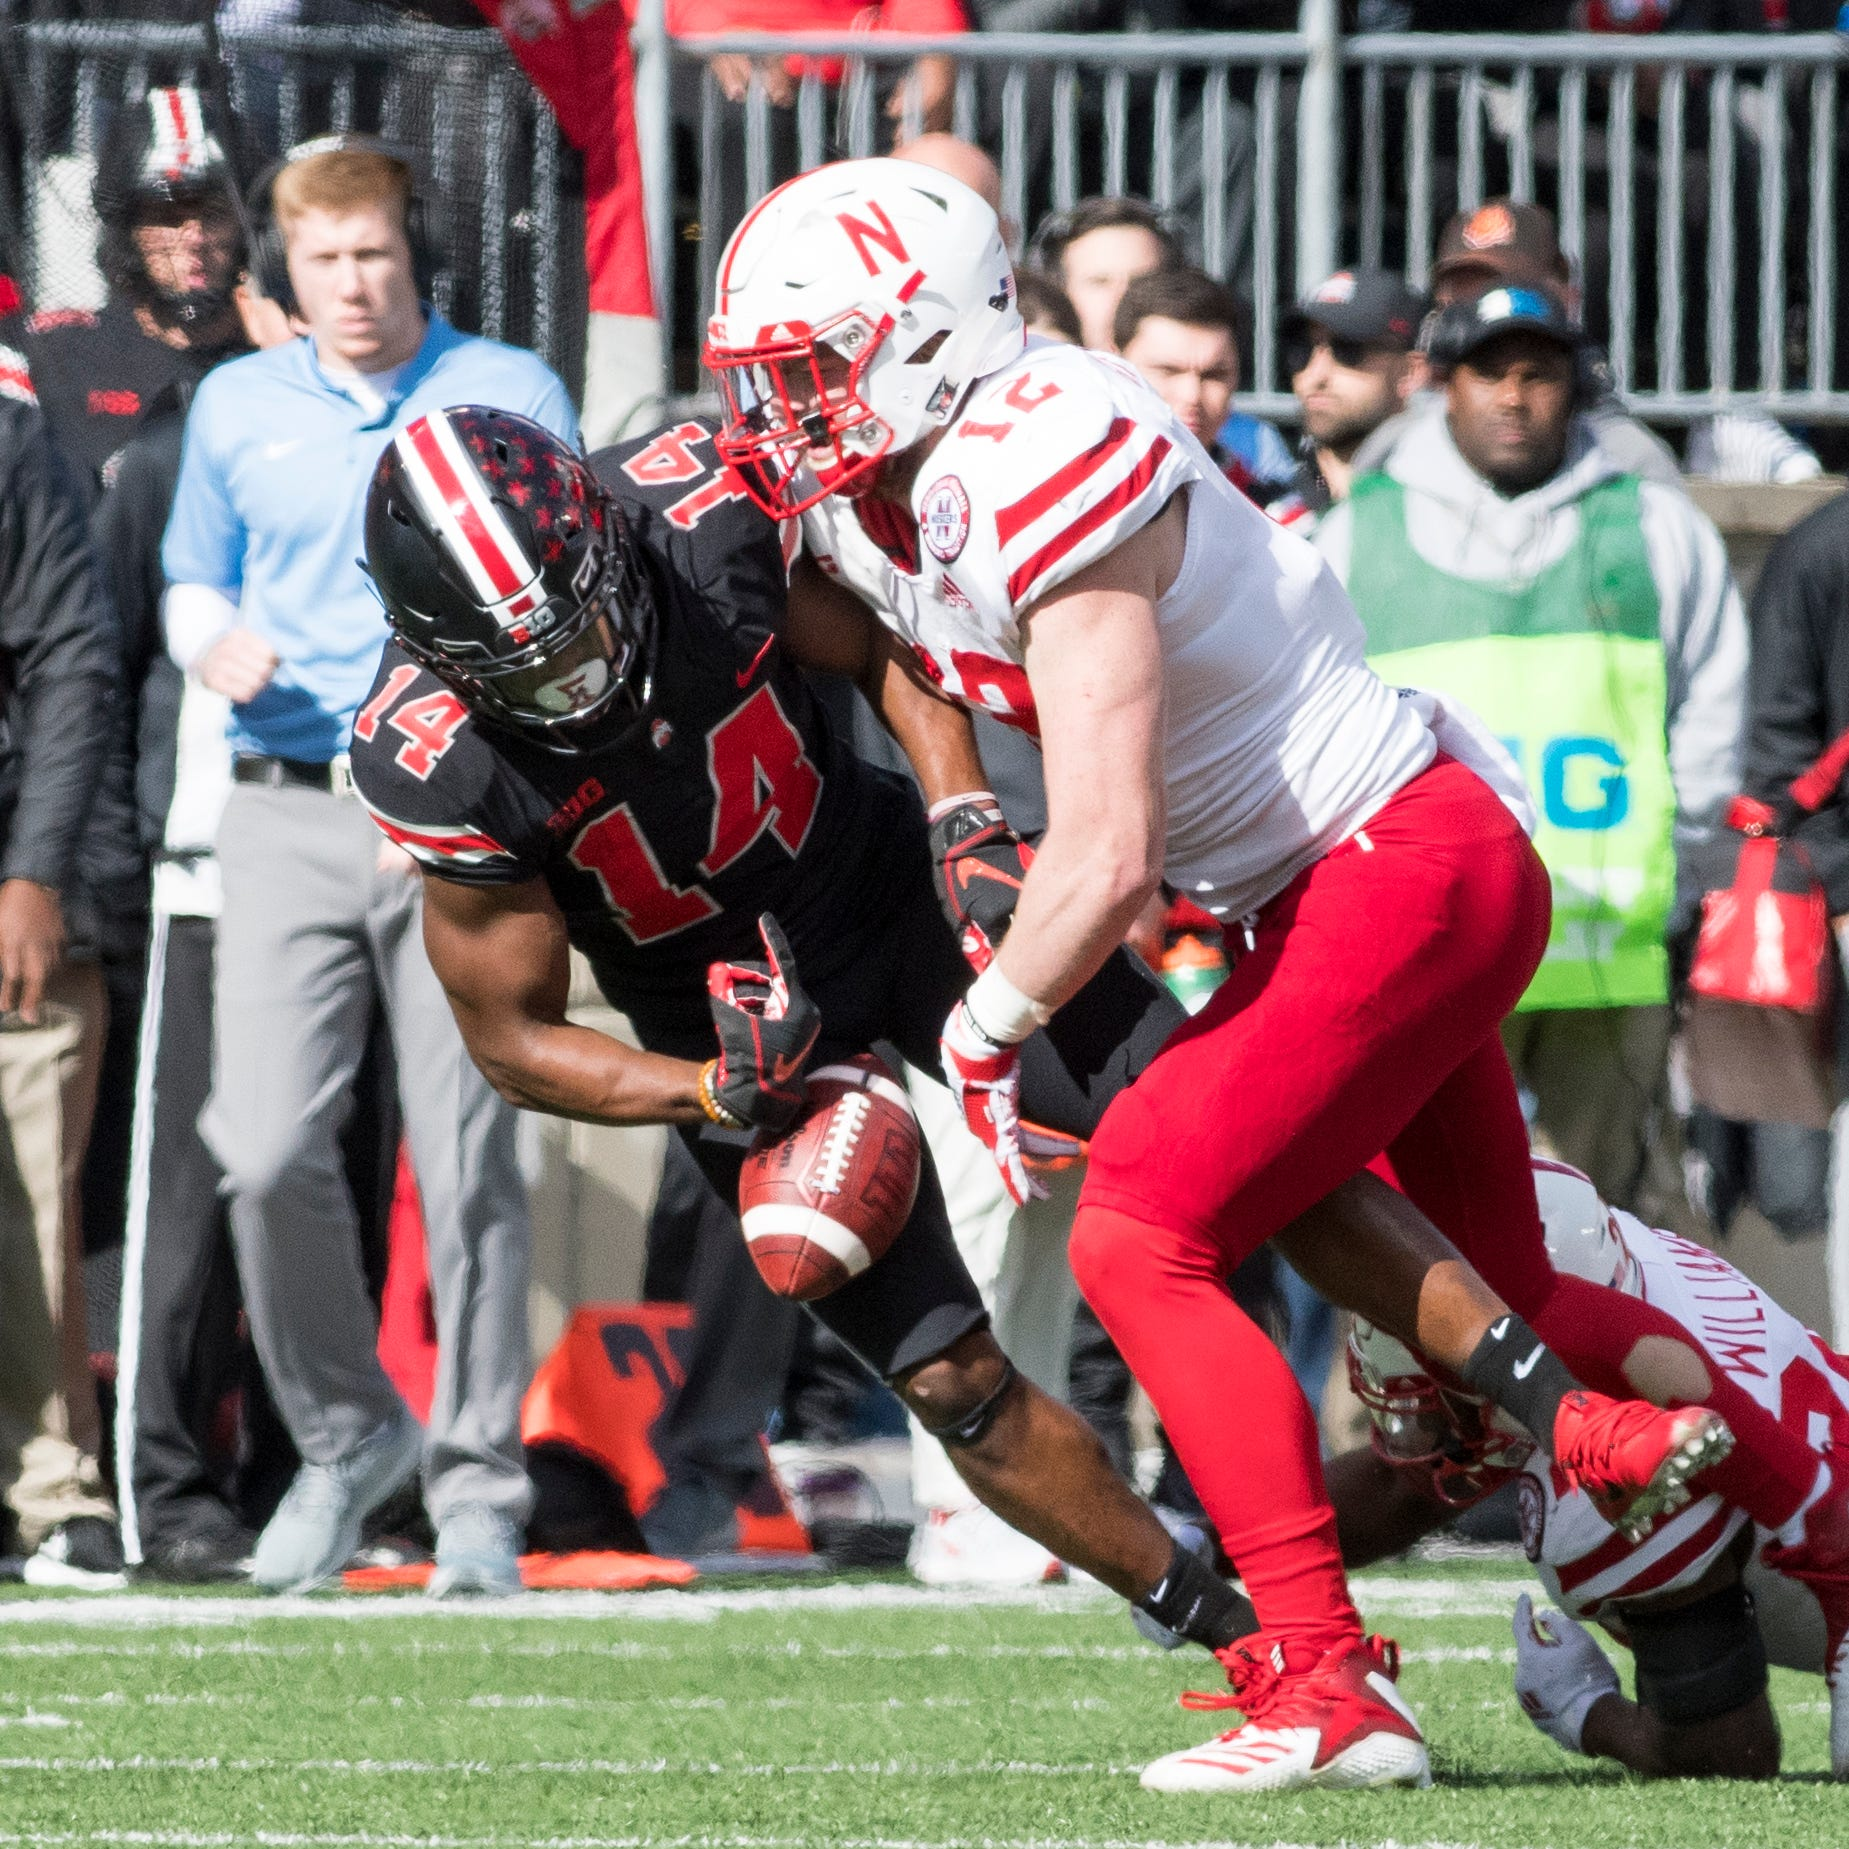 The usually sure-handed K.J. Hill loses control of the football, one of three turnovers Ohio State suffered in its 36-31 win over Nebraska